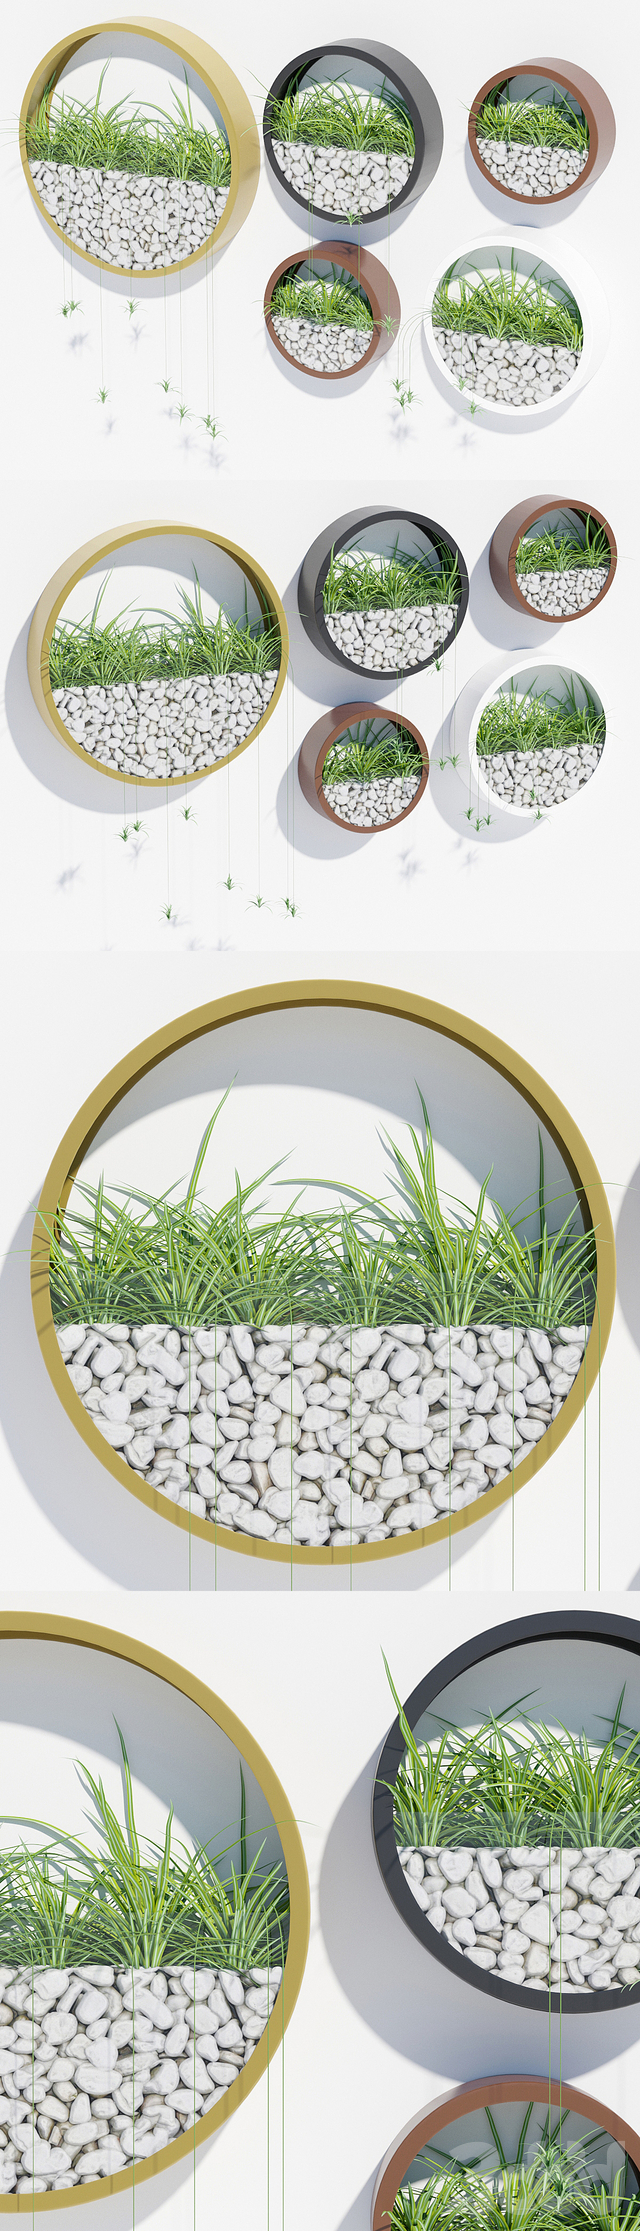 Wall planters two